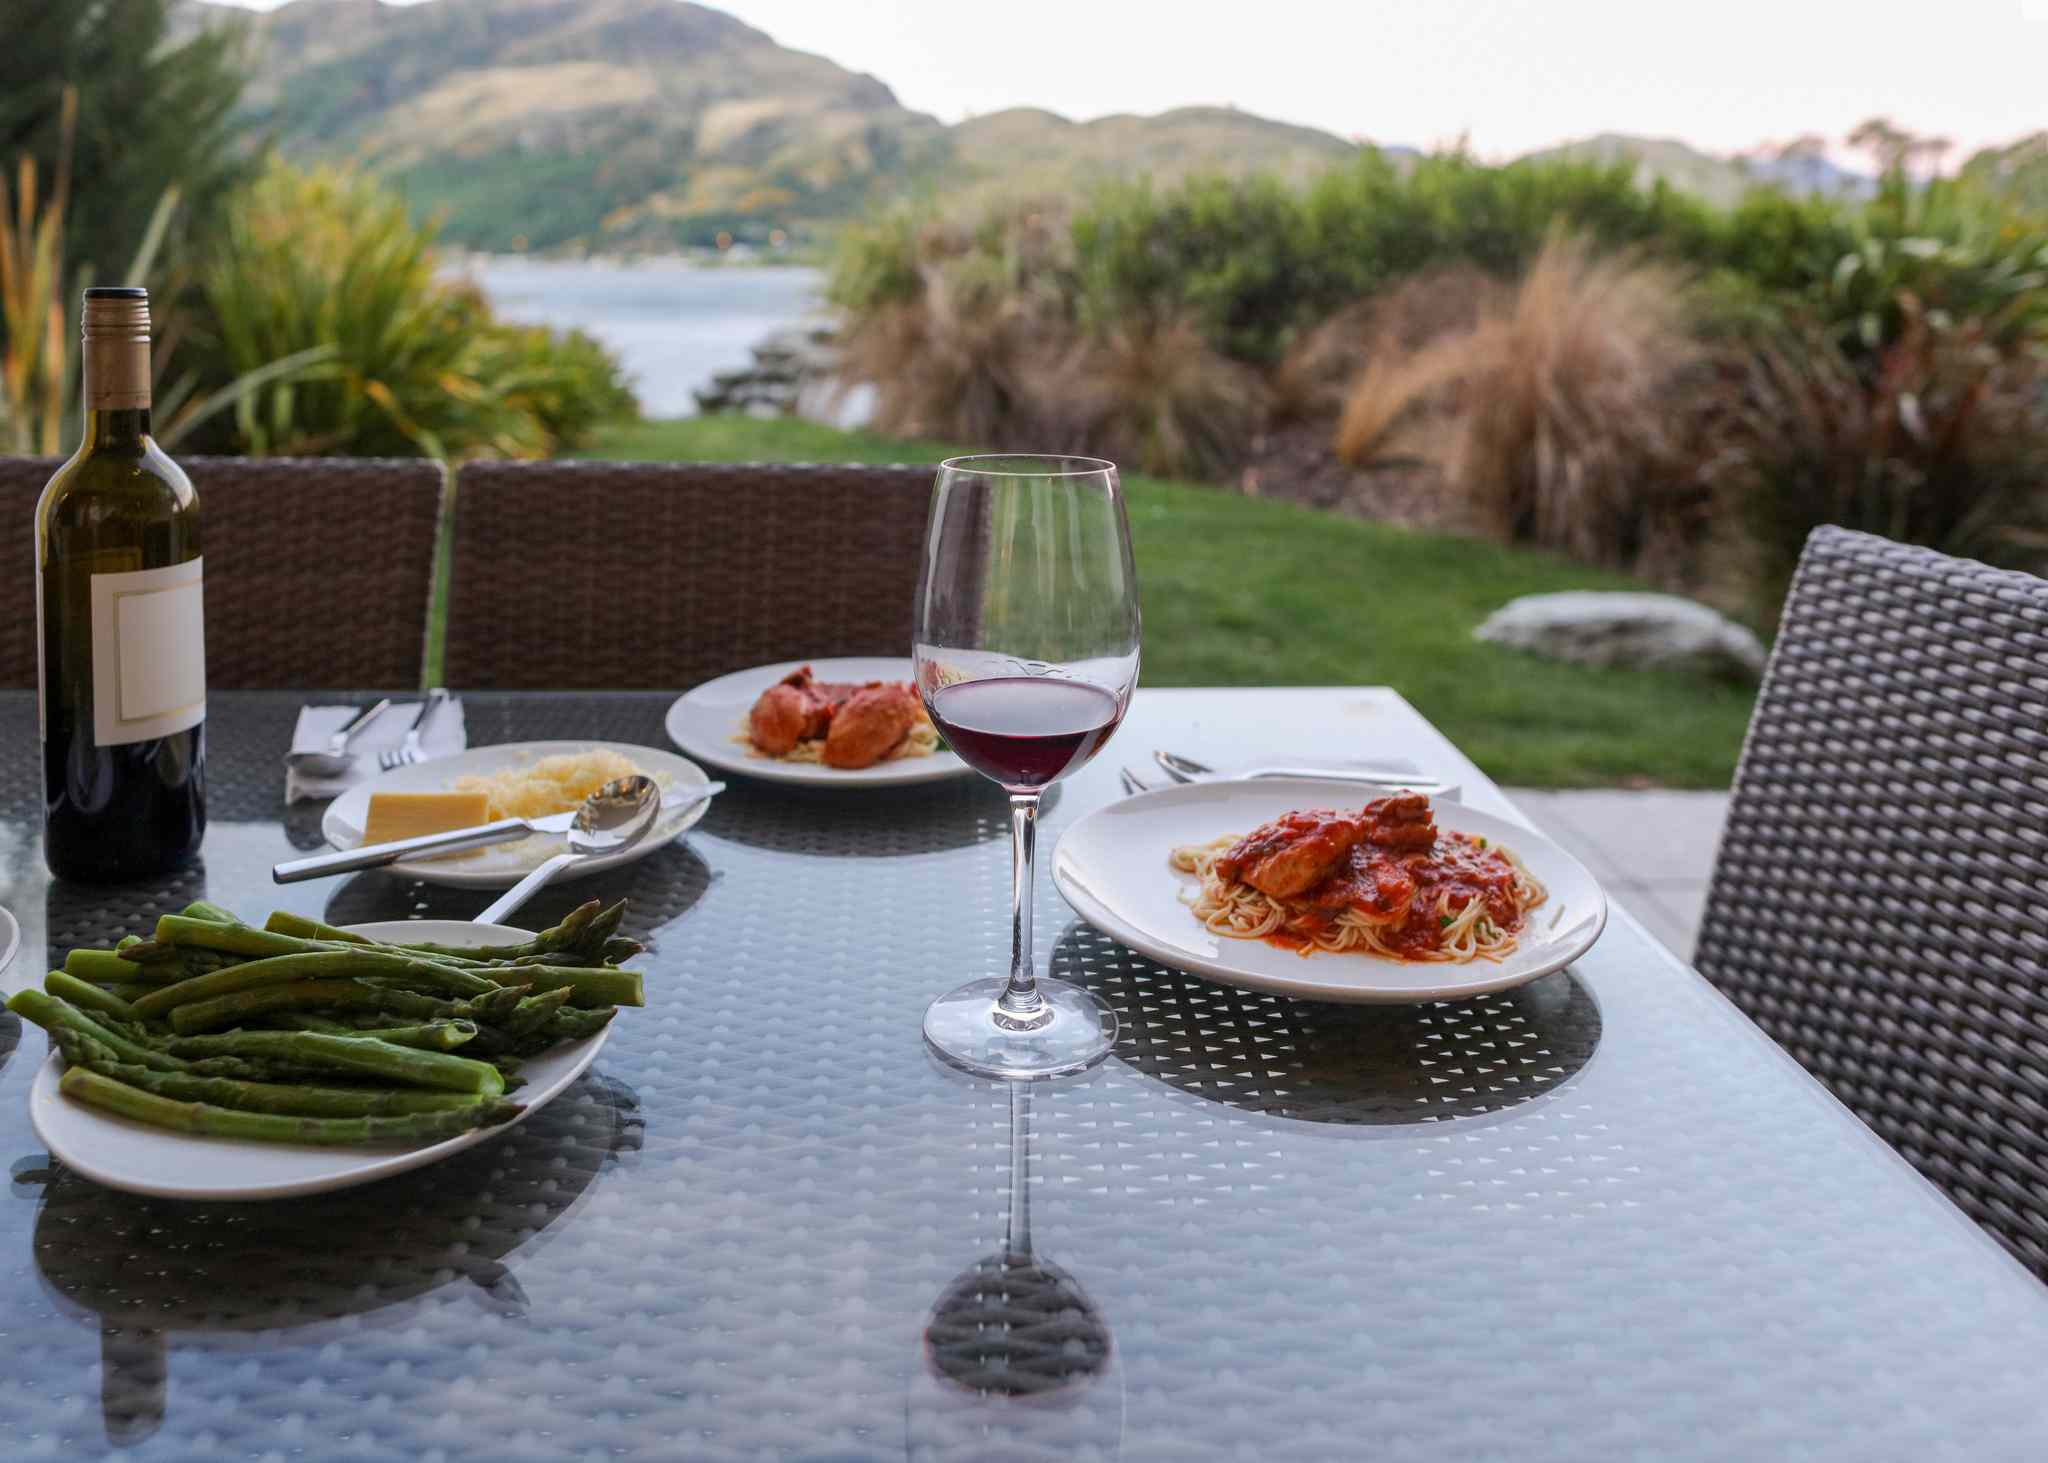 glass of wine and plates of food on an outdoor table with trees and lake in background